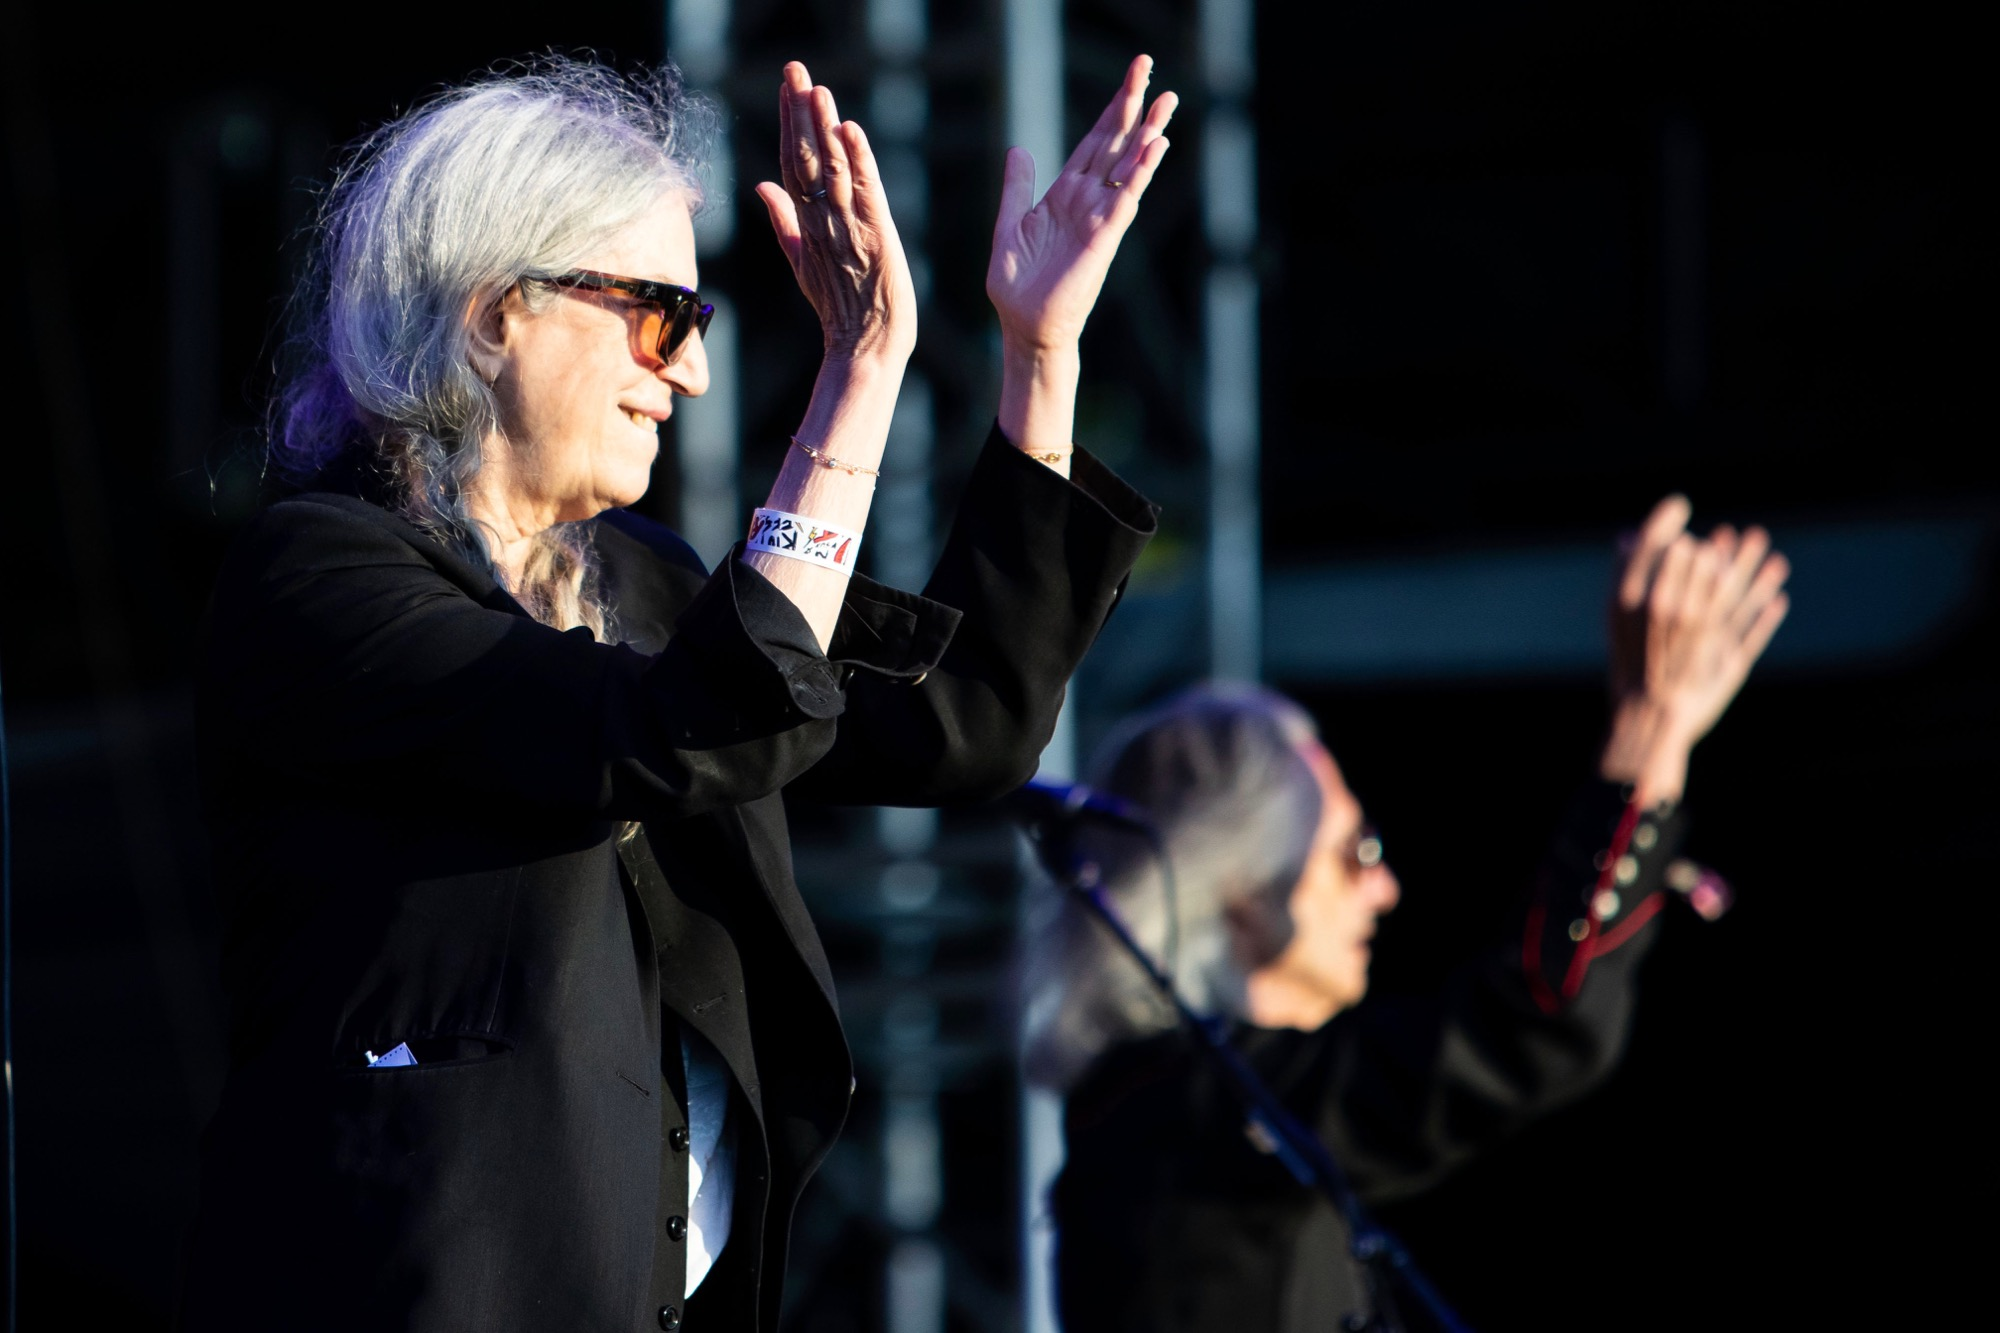 Patti Smith performs at Riot Fest in Chicago on Sept. 16, 2021.